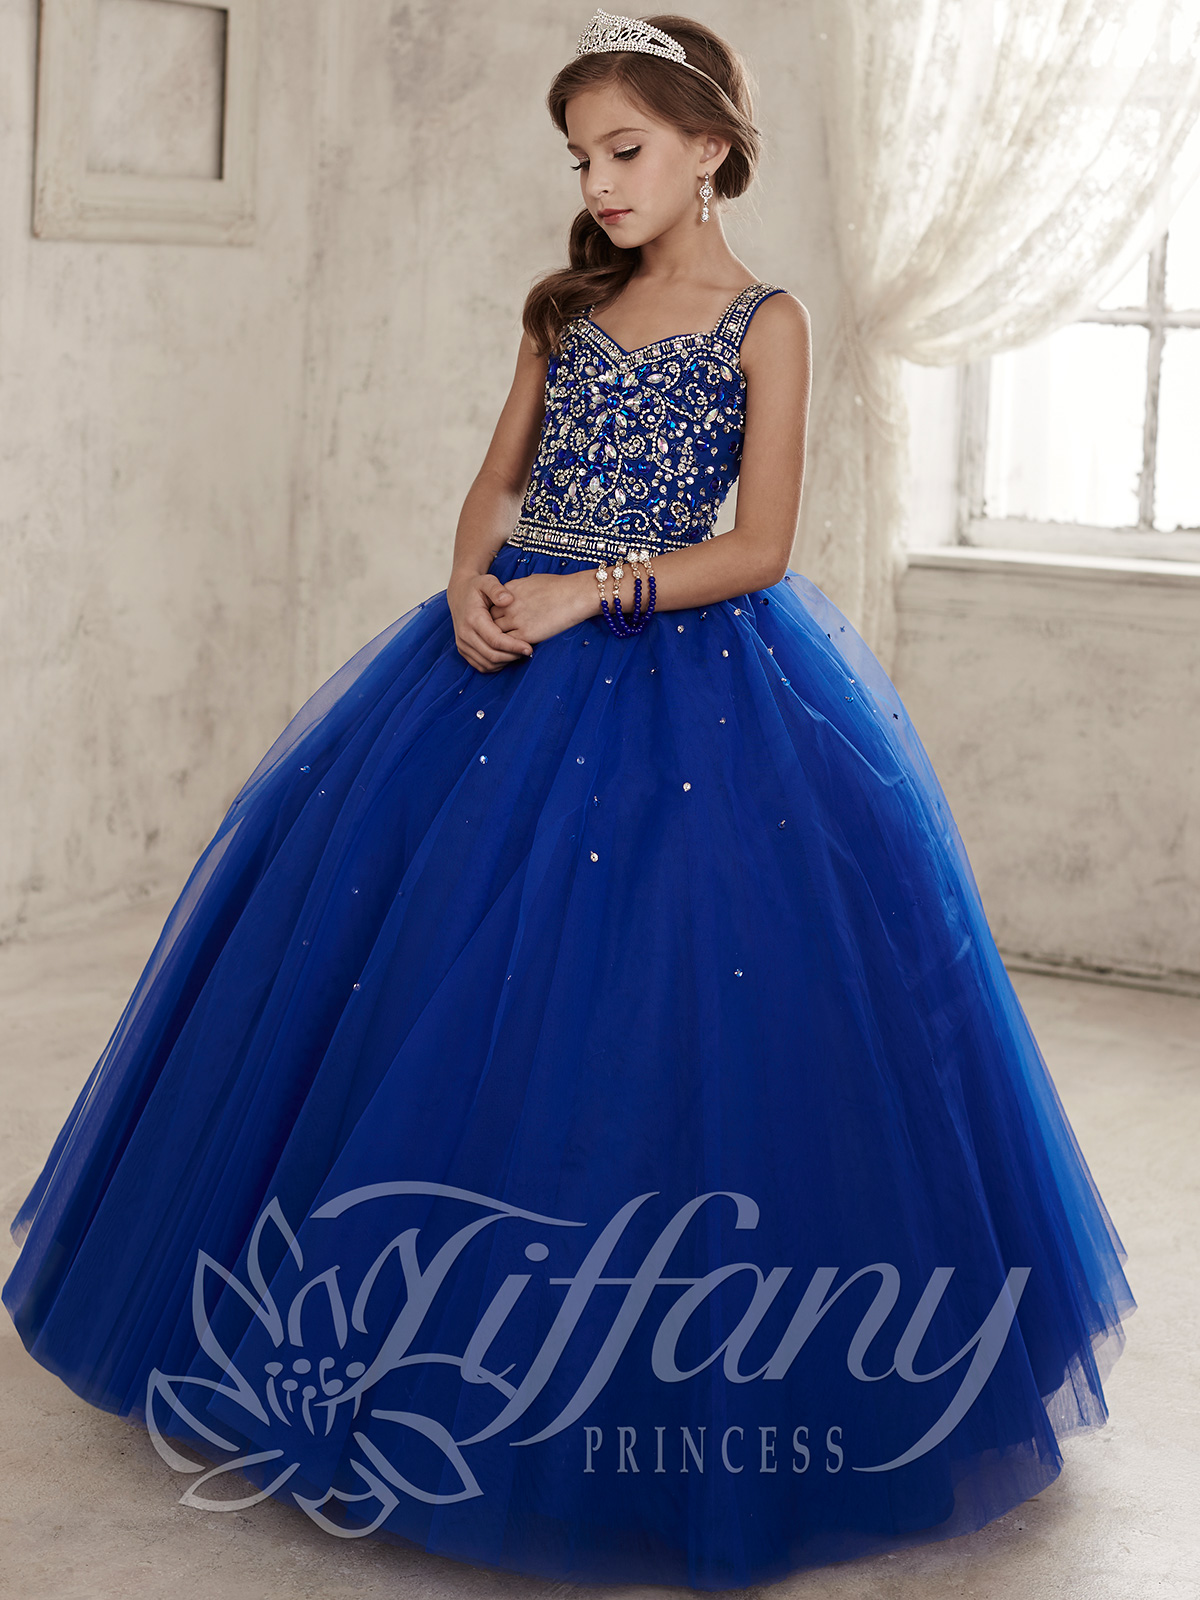 Tiffany Princess 13443 Sweetheart Girls Pageant Dress|PageantDesigns.com